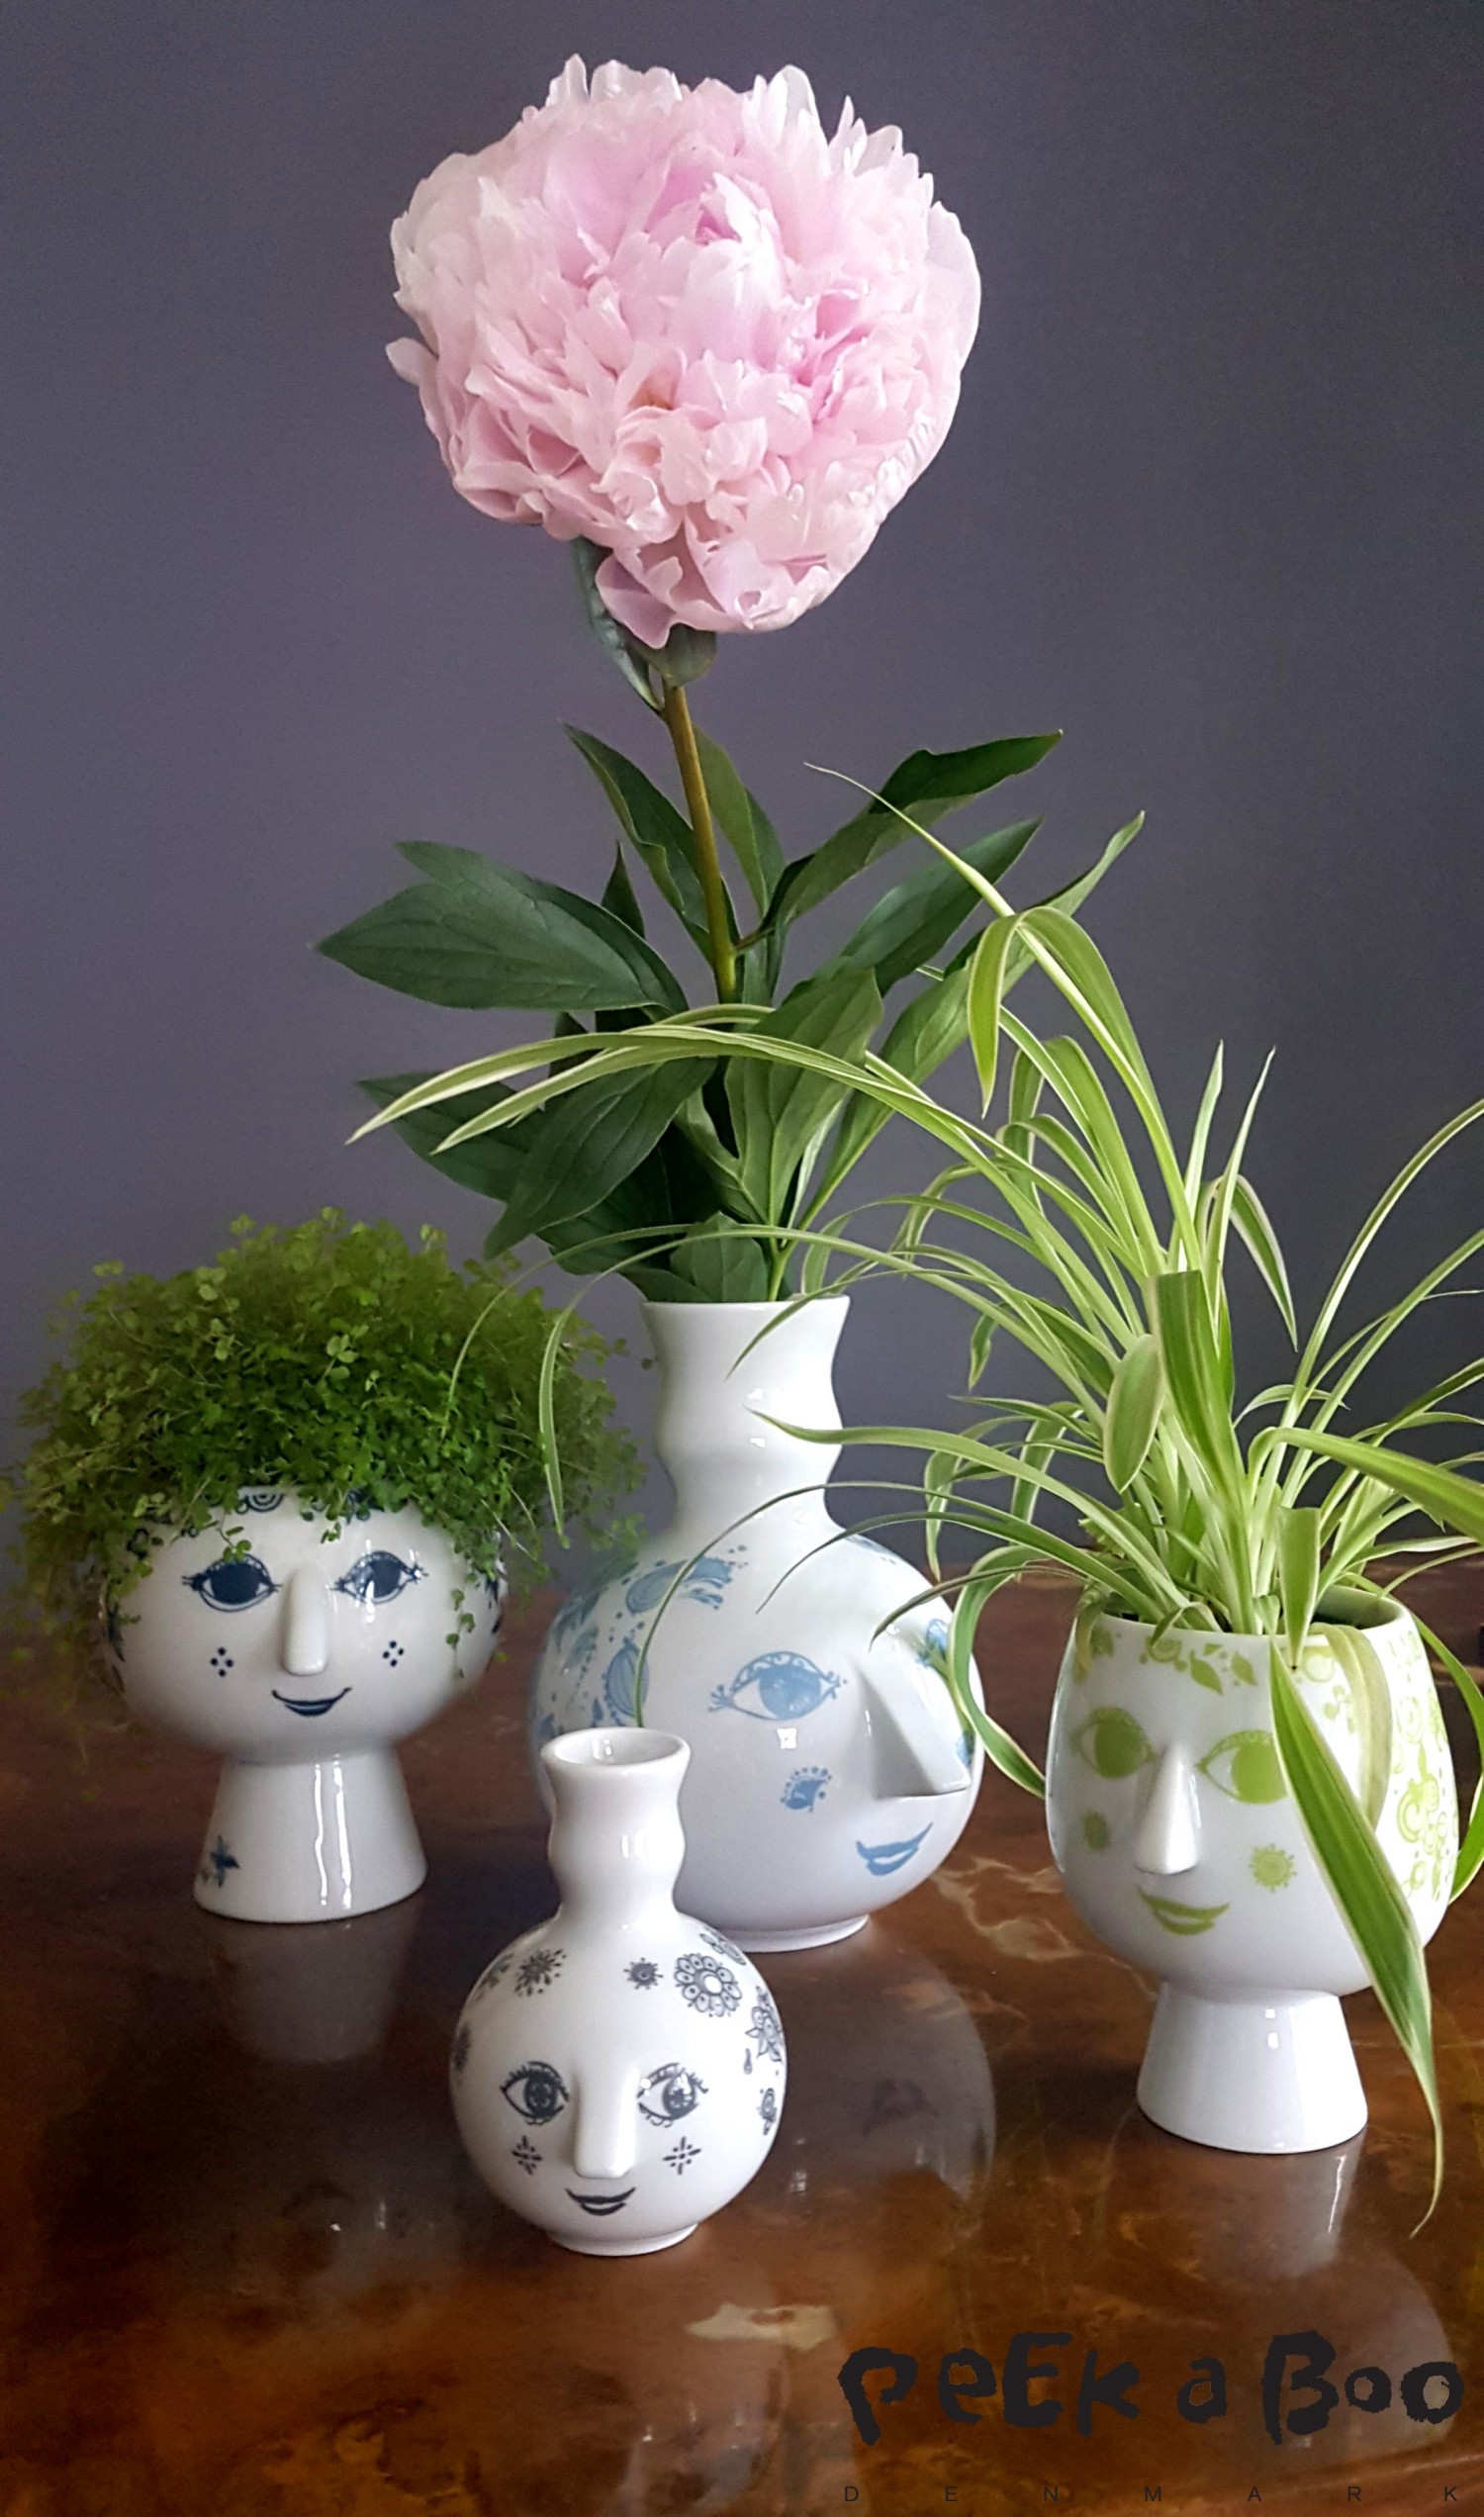 A huge selection of the pots and vases from Wiinblad.